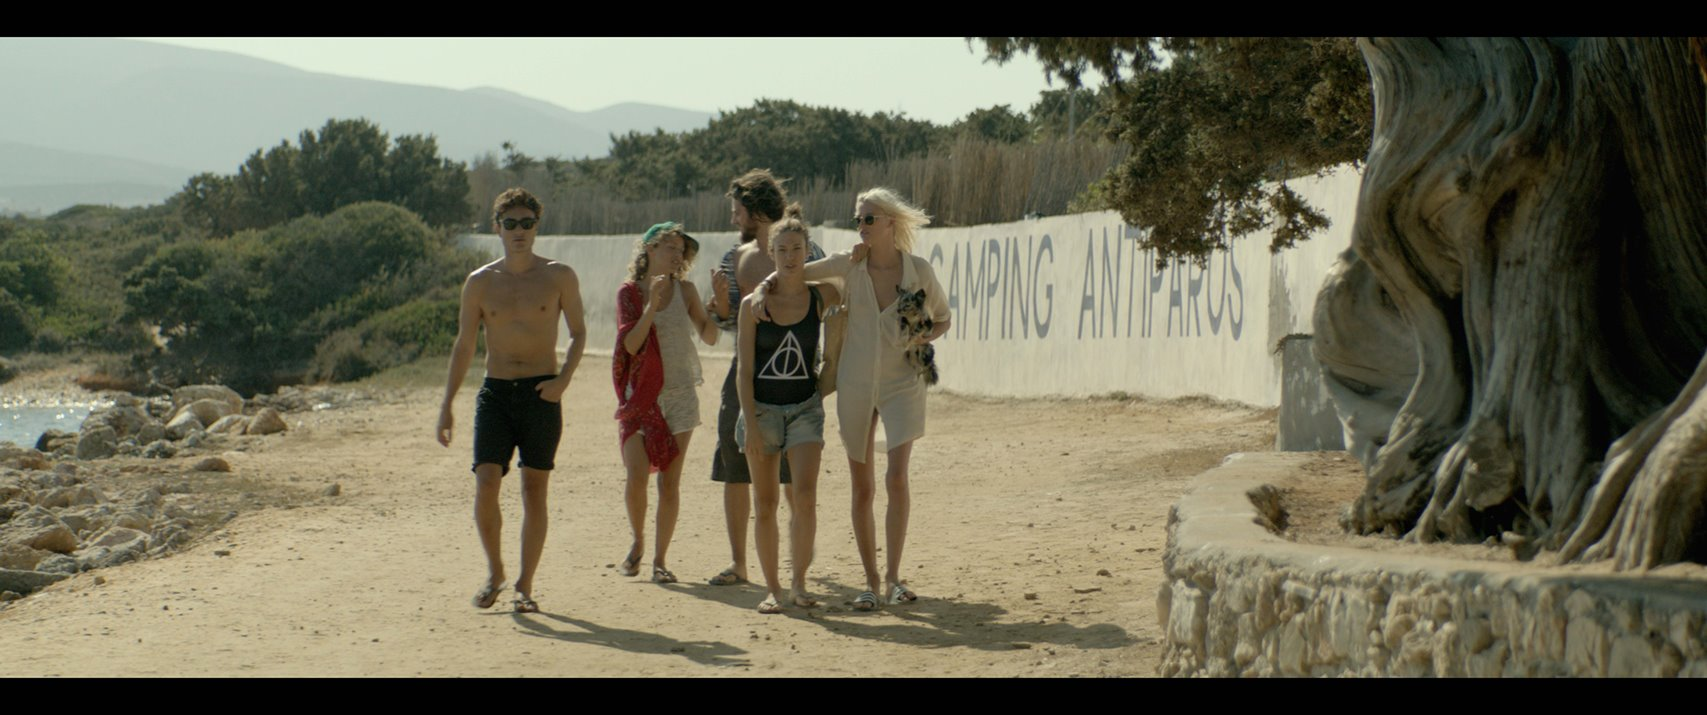 Suntan Antiparos2 Filming Europe   EUFCN launches the European Film Location Award